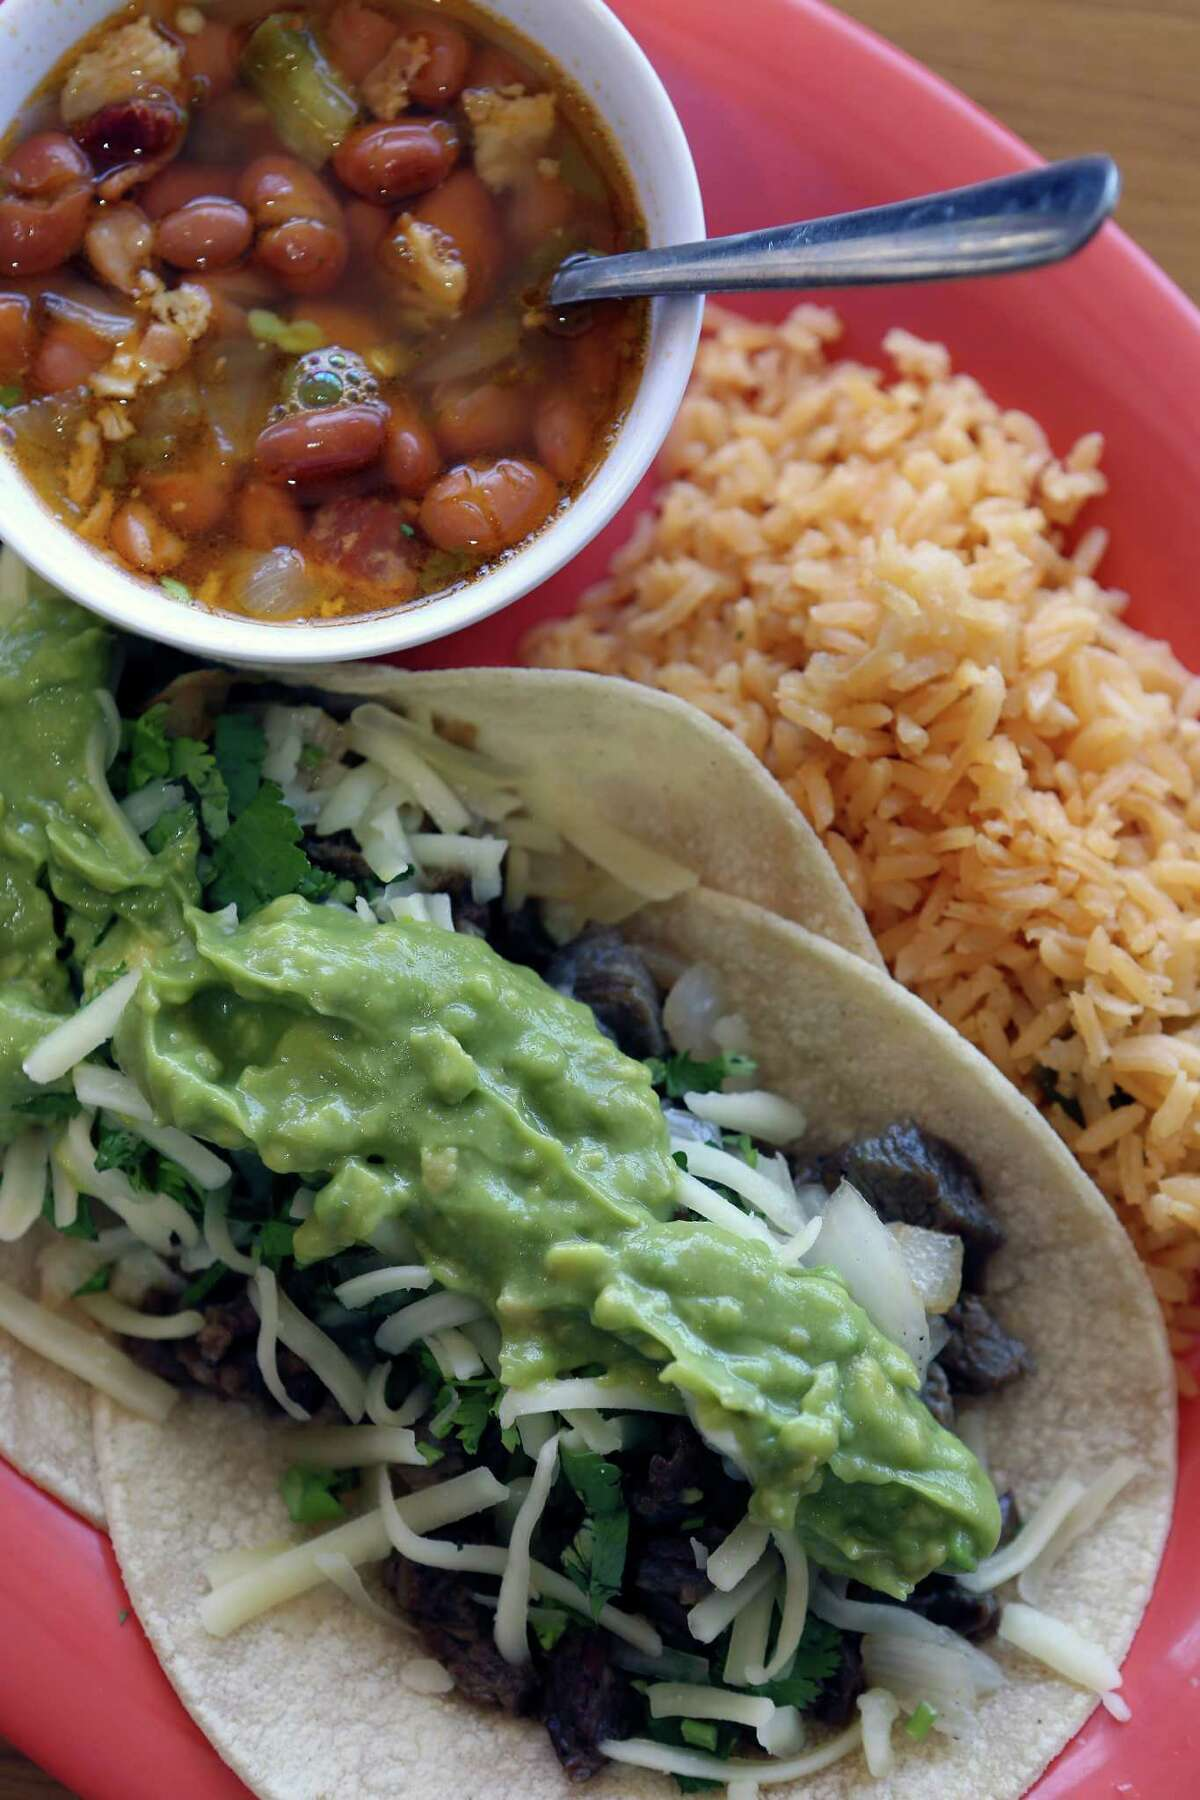 L-Taco Mexican Cafe calls these tacos L Super Street. The restaurant in Stone Oak won Best New Restaurant in the 2016 Readers' Choice Awards.